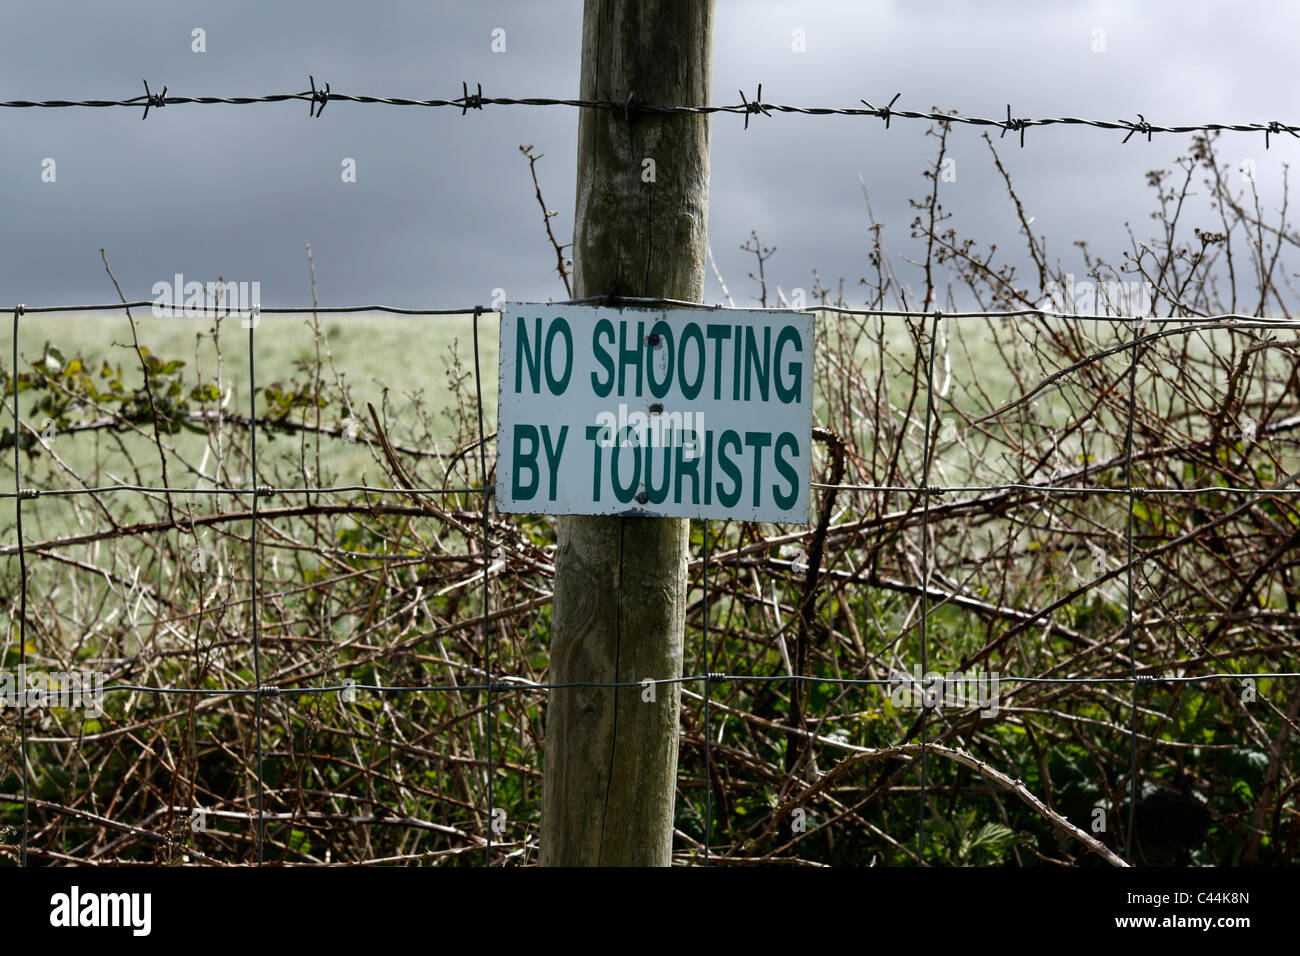 No shooting by tourists sign on wire fence, County Sligo, Republic of Ireland - Stock Image